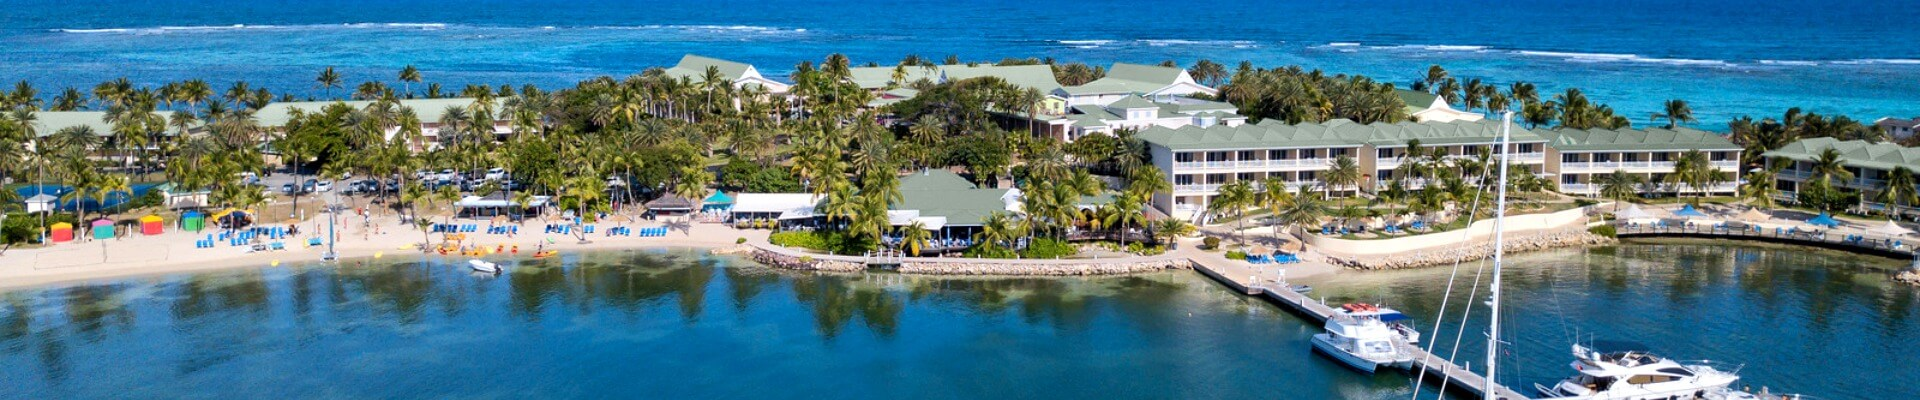 ST. JAMES'S CLUB & VILLAS – ALL-INCLUSIVE ANTIGUA